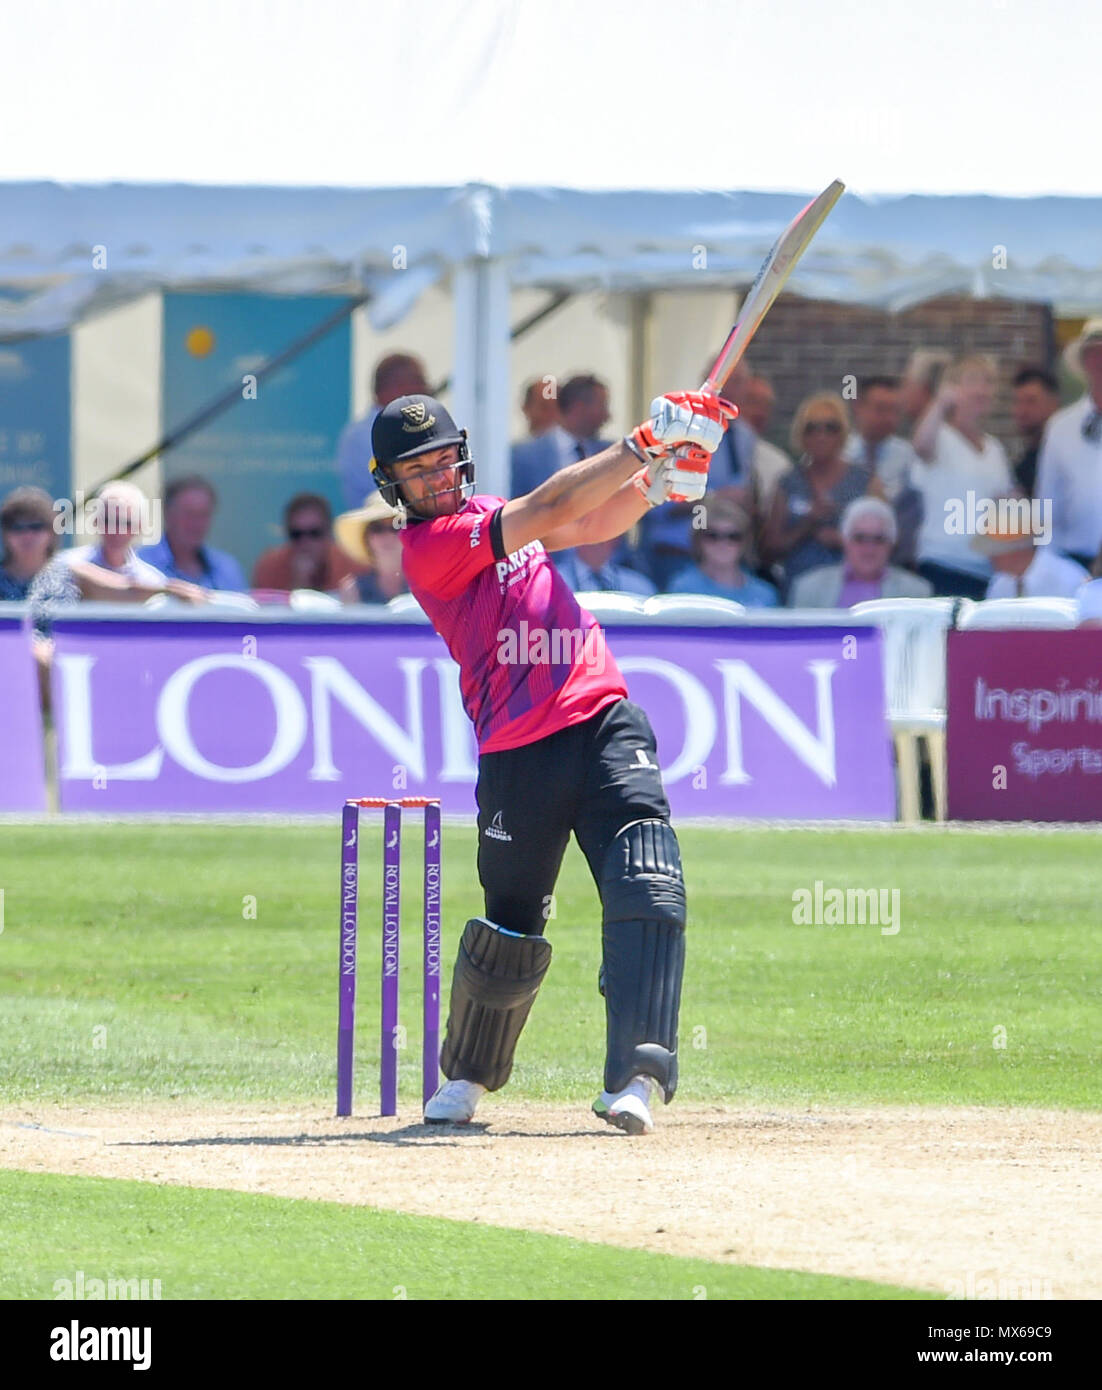 Eastbourne UK 3rd June 2018  - Laurie Evans of Sussex hits a boundary on his way to a century during the Royal London One Day cricket match between Sussex Sharks and Essex Eagles at The Saffrons ground in Eastbourne UK Credit: Simon Dack/Alamy Live News Stock Photo